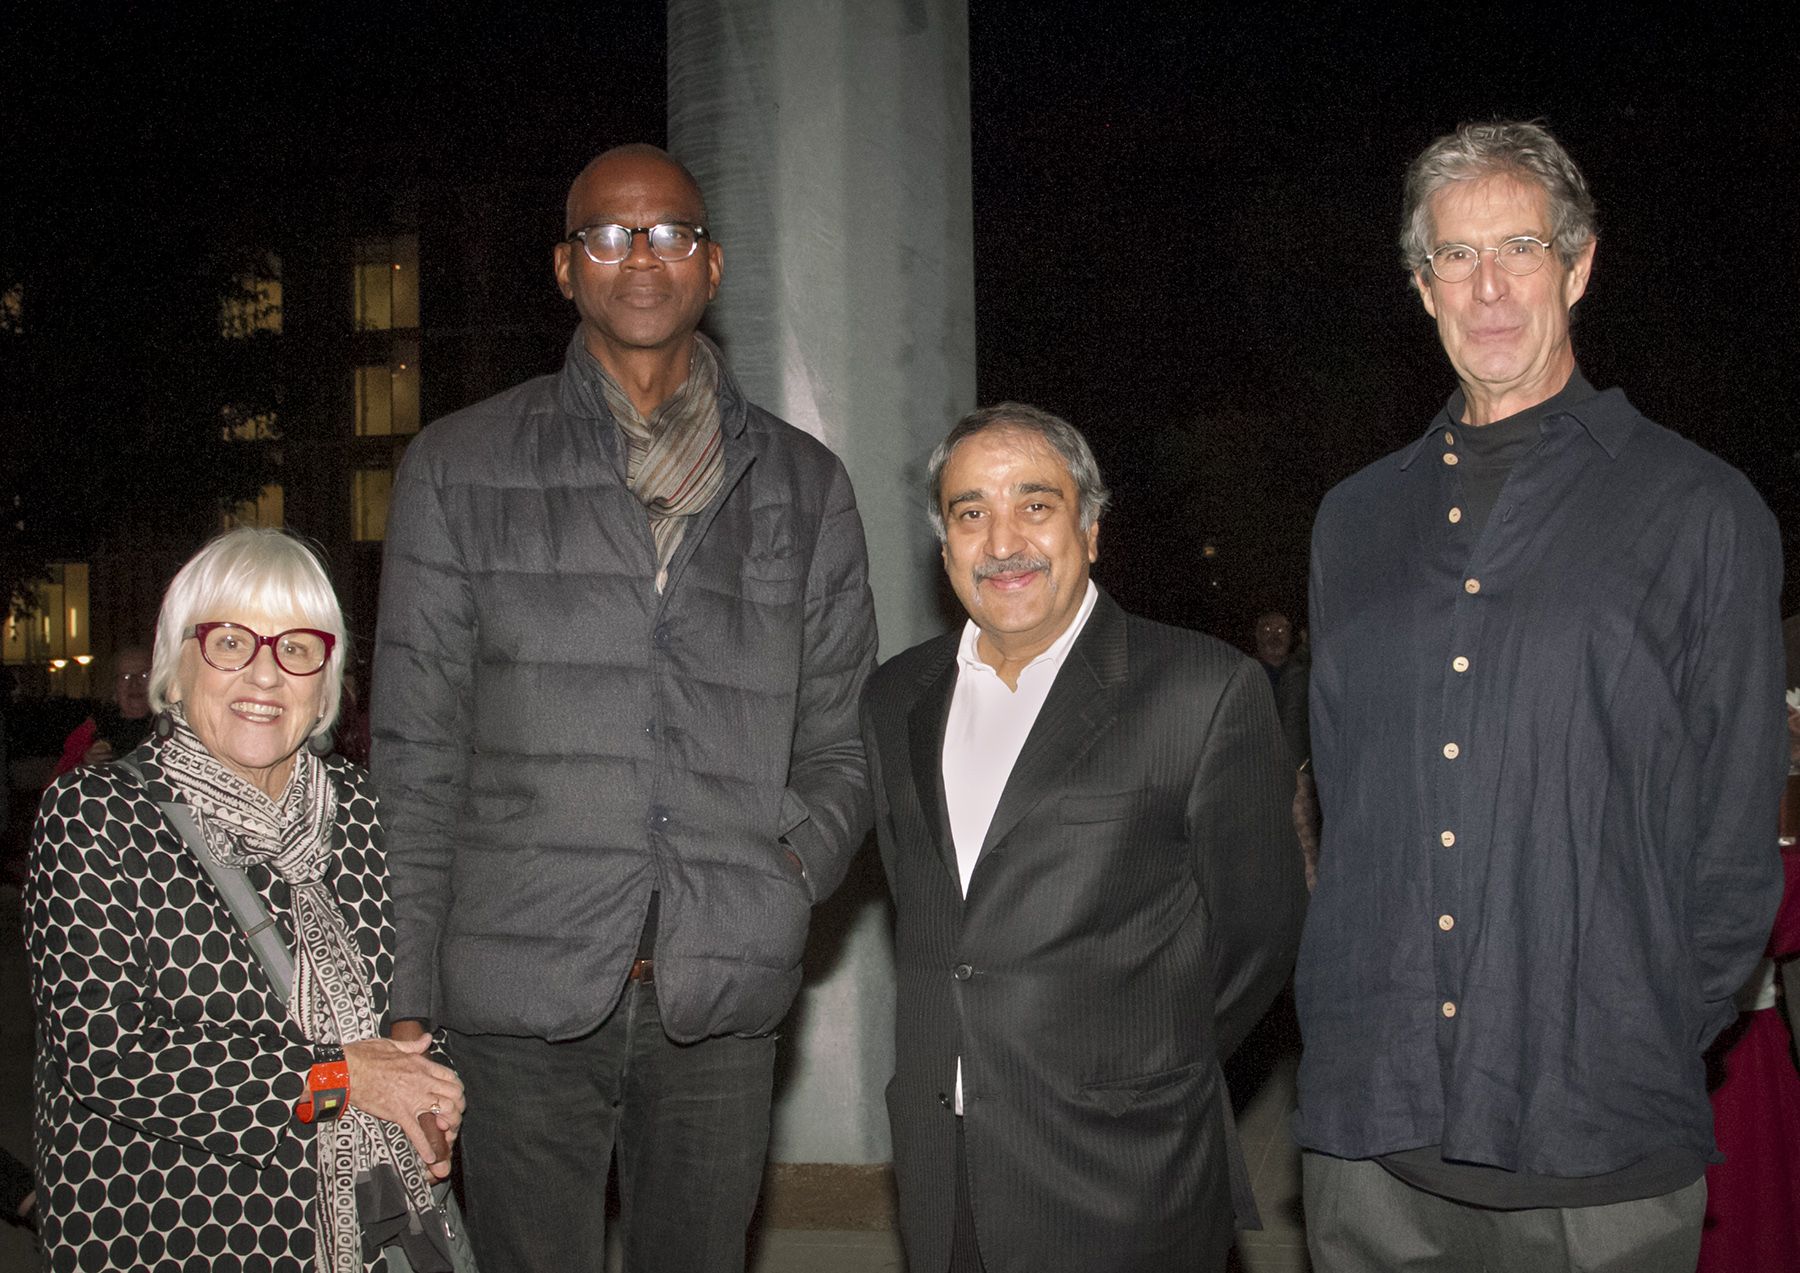 (Left to right) Stuart Collection Director Mary Beebe, artist Mark Bradford, Chancellor Pradeep K. Khosla and Stuart Collection Project Director Mathieu Gregoire.